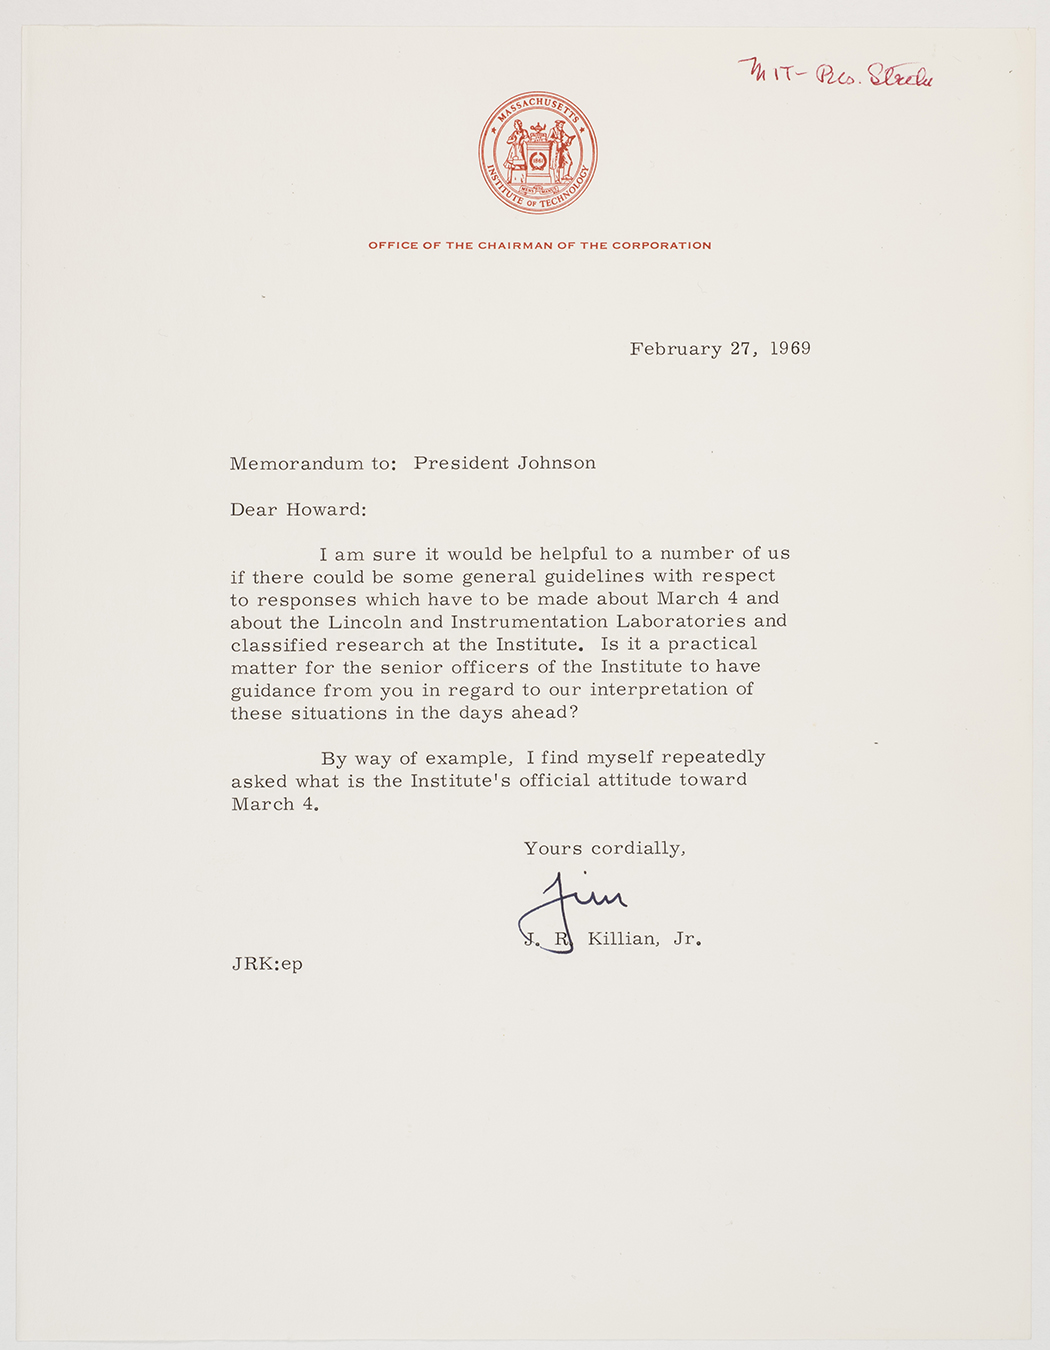 James R. Killian to Howard Johnson letter, 1969 February 27, AC-0118, Box 107.